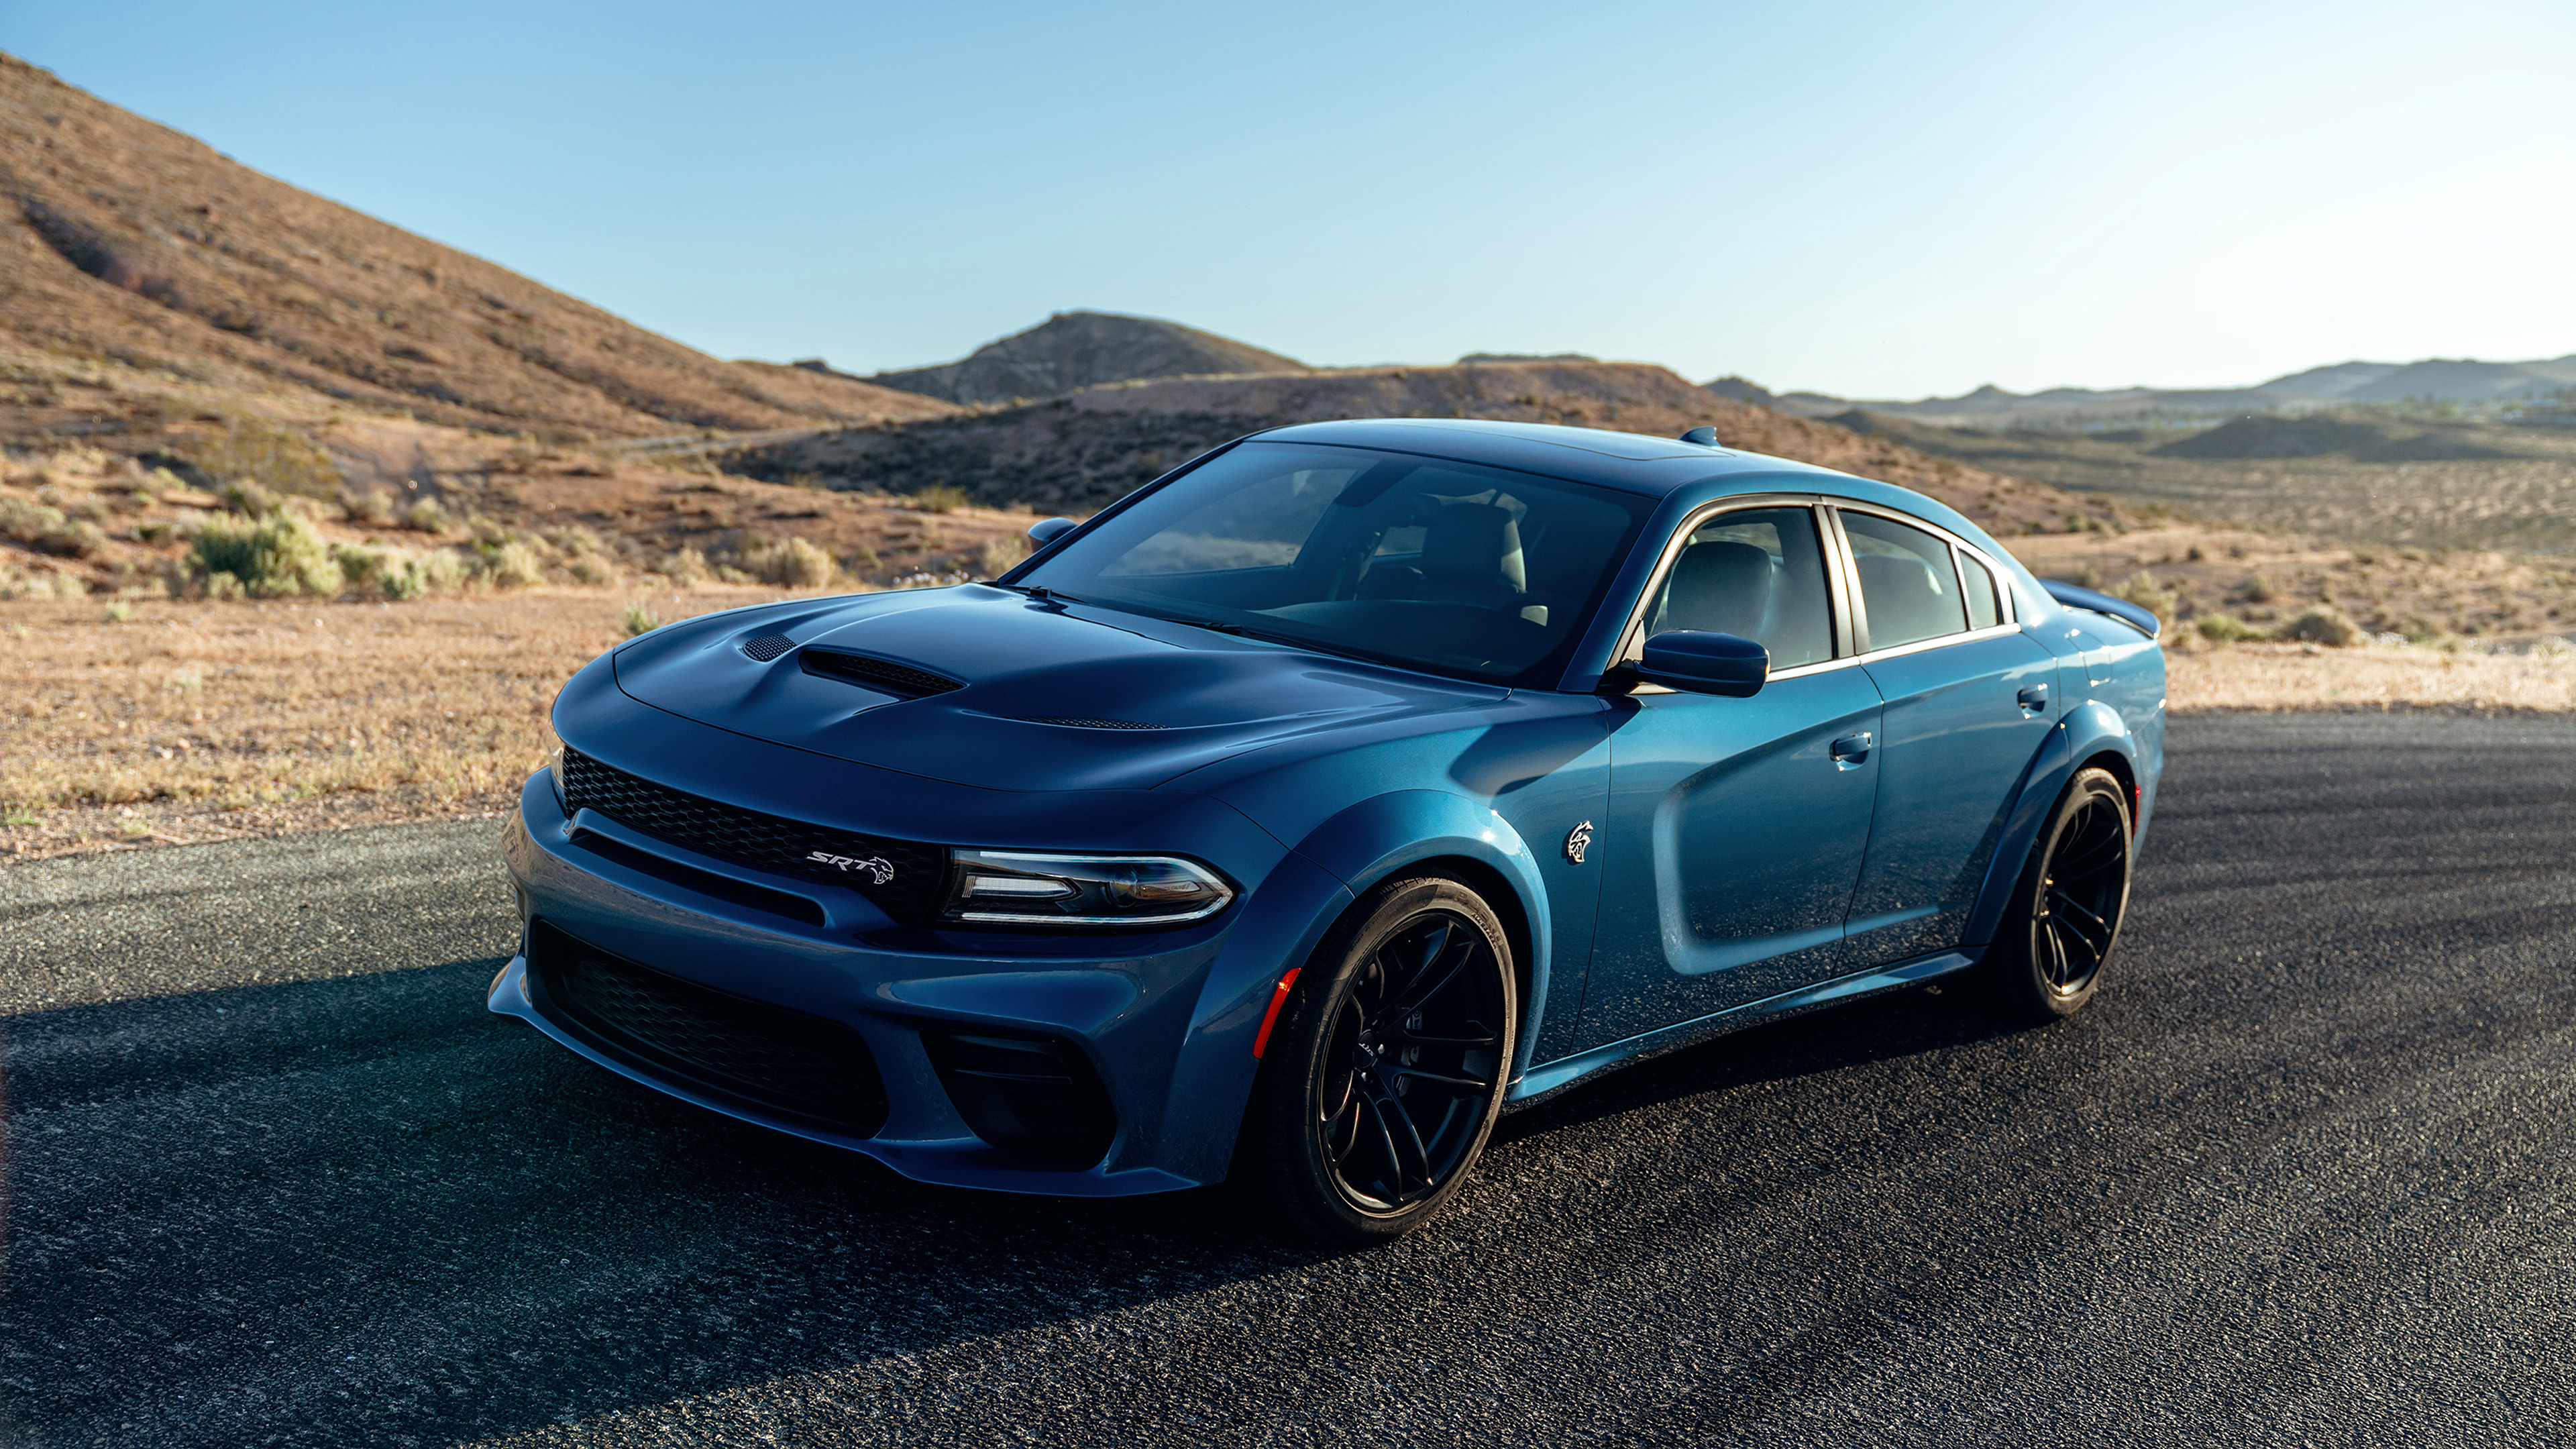 2020 Dodge Charger Srt Hellcat Widebody 4k Ultra Hd Wallpaper Background Image 3840x2160 Id 1036032 Wallpaper Abyss